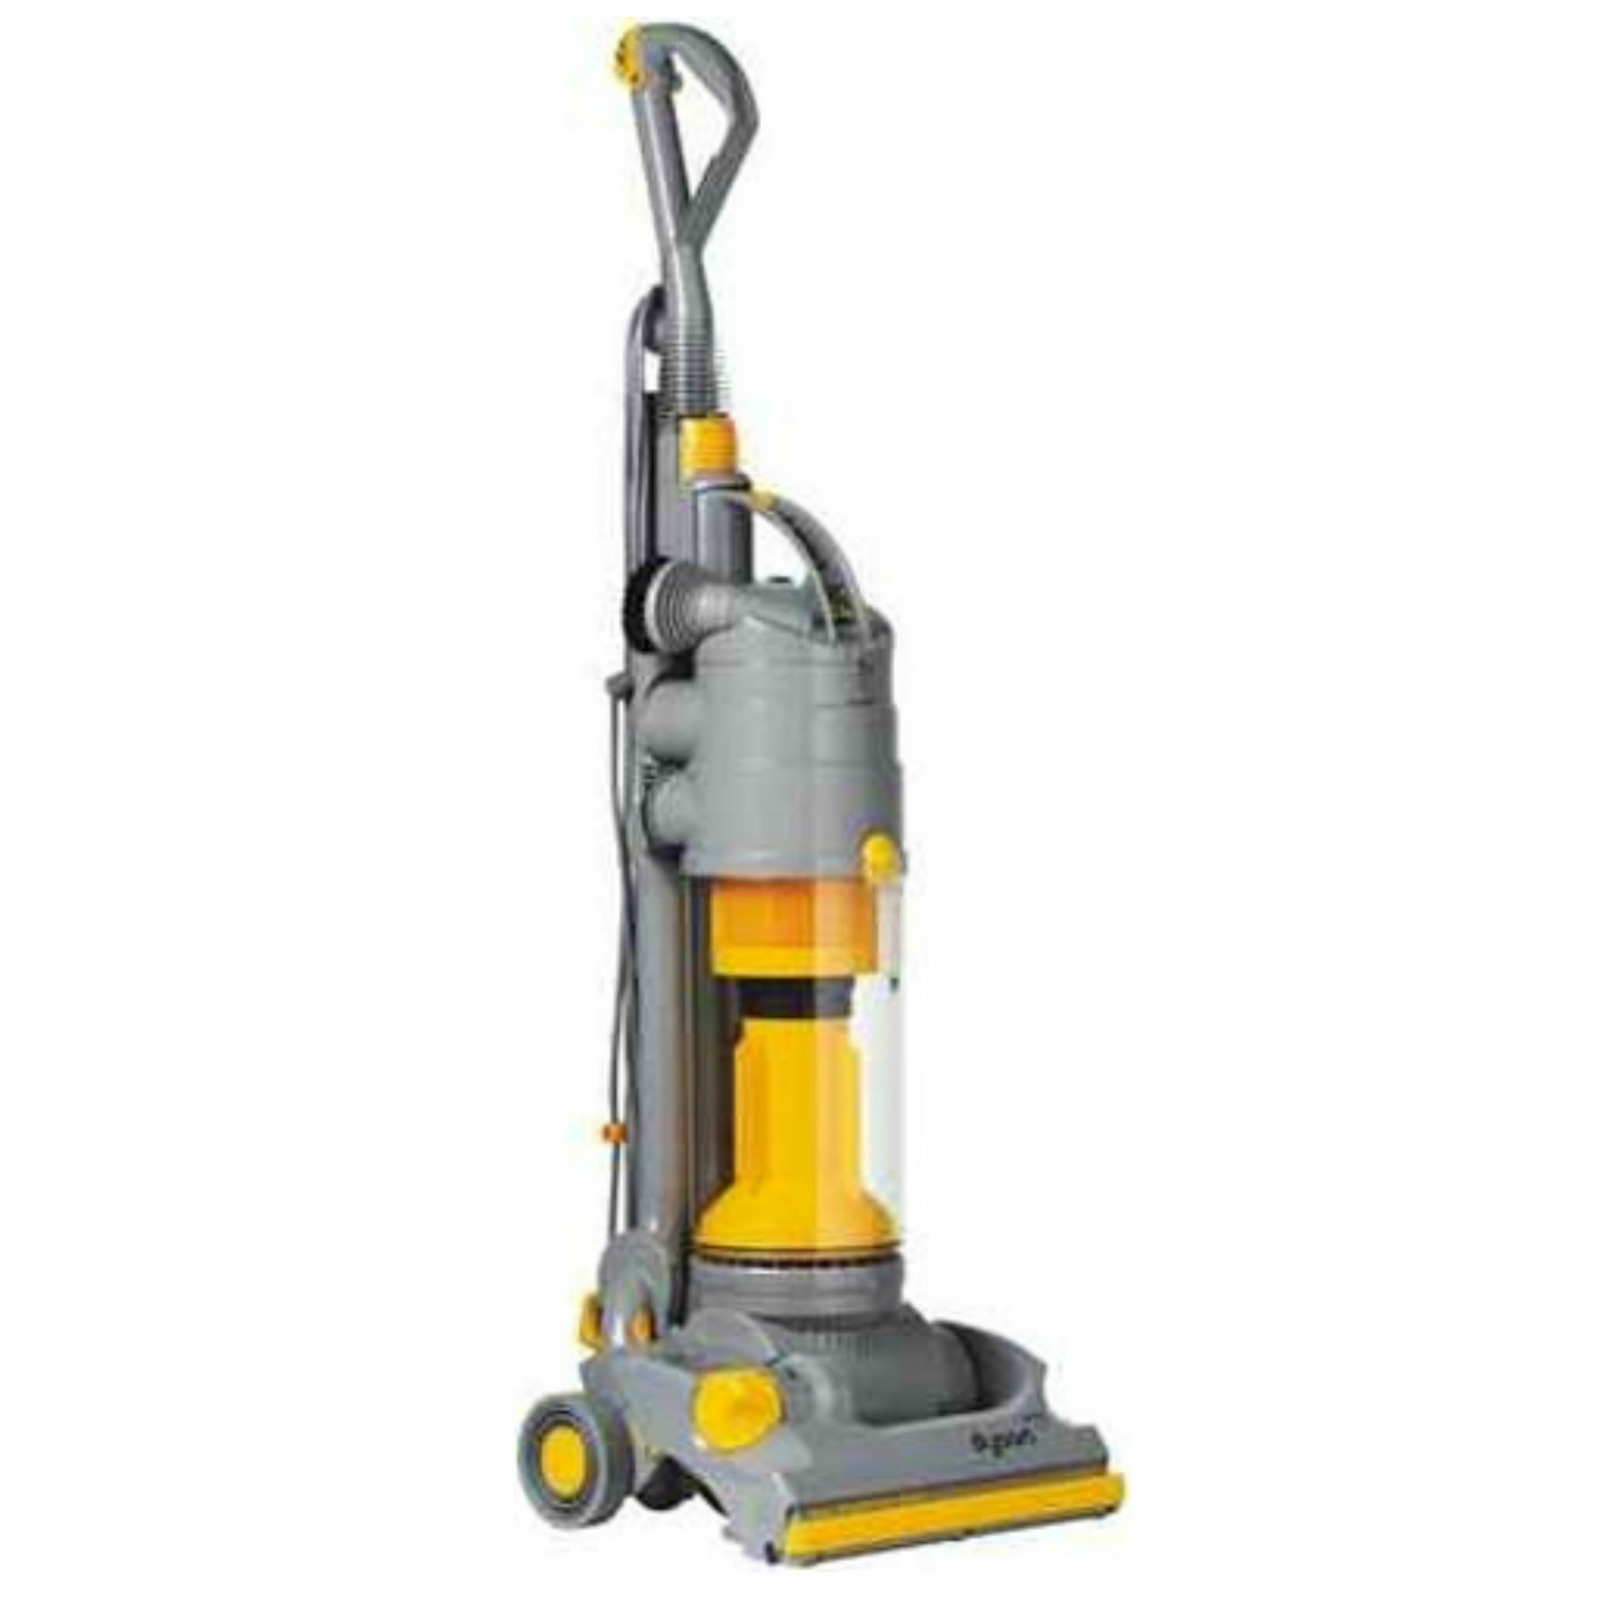 Dyson Dc04 Upright Vacuum Cleaner Standard Gray Yellow